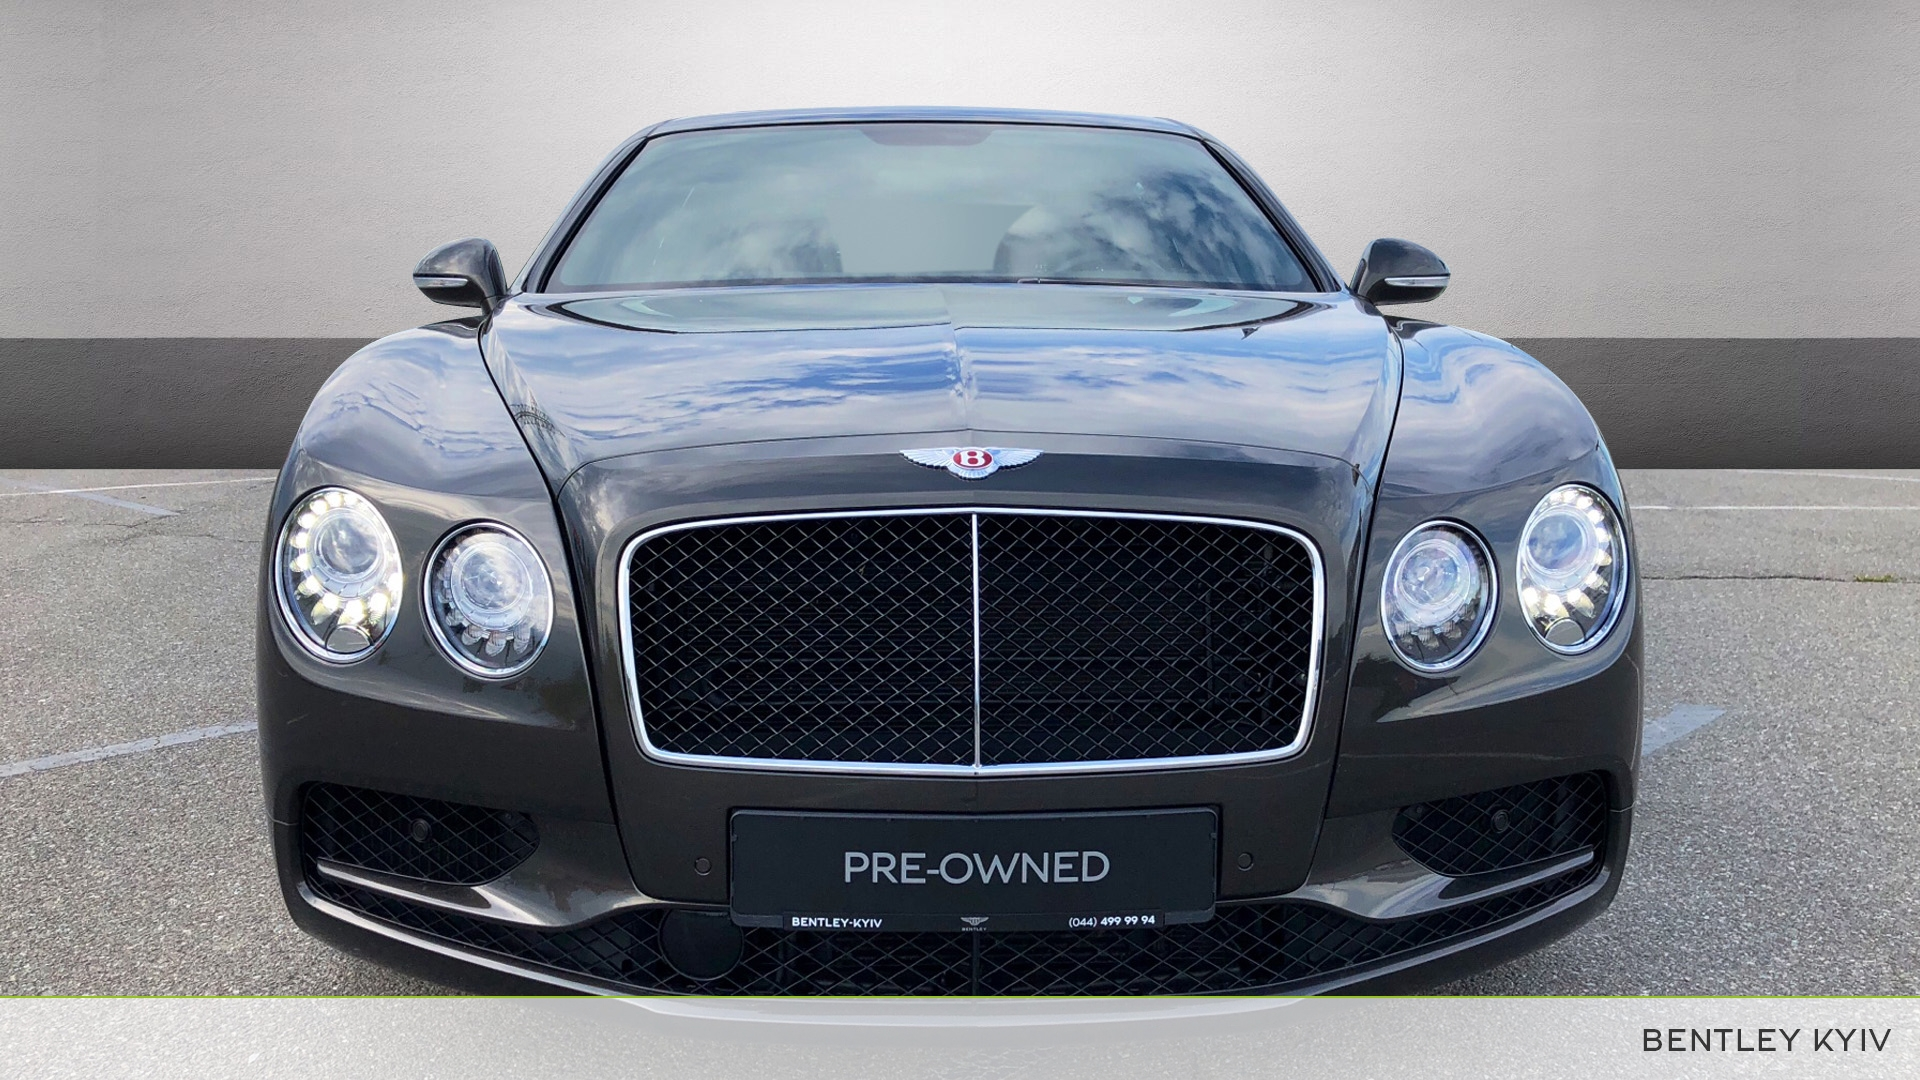 Bentley Flying Spur V8 S used car for sale in Kiev